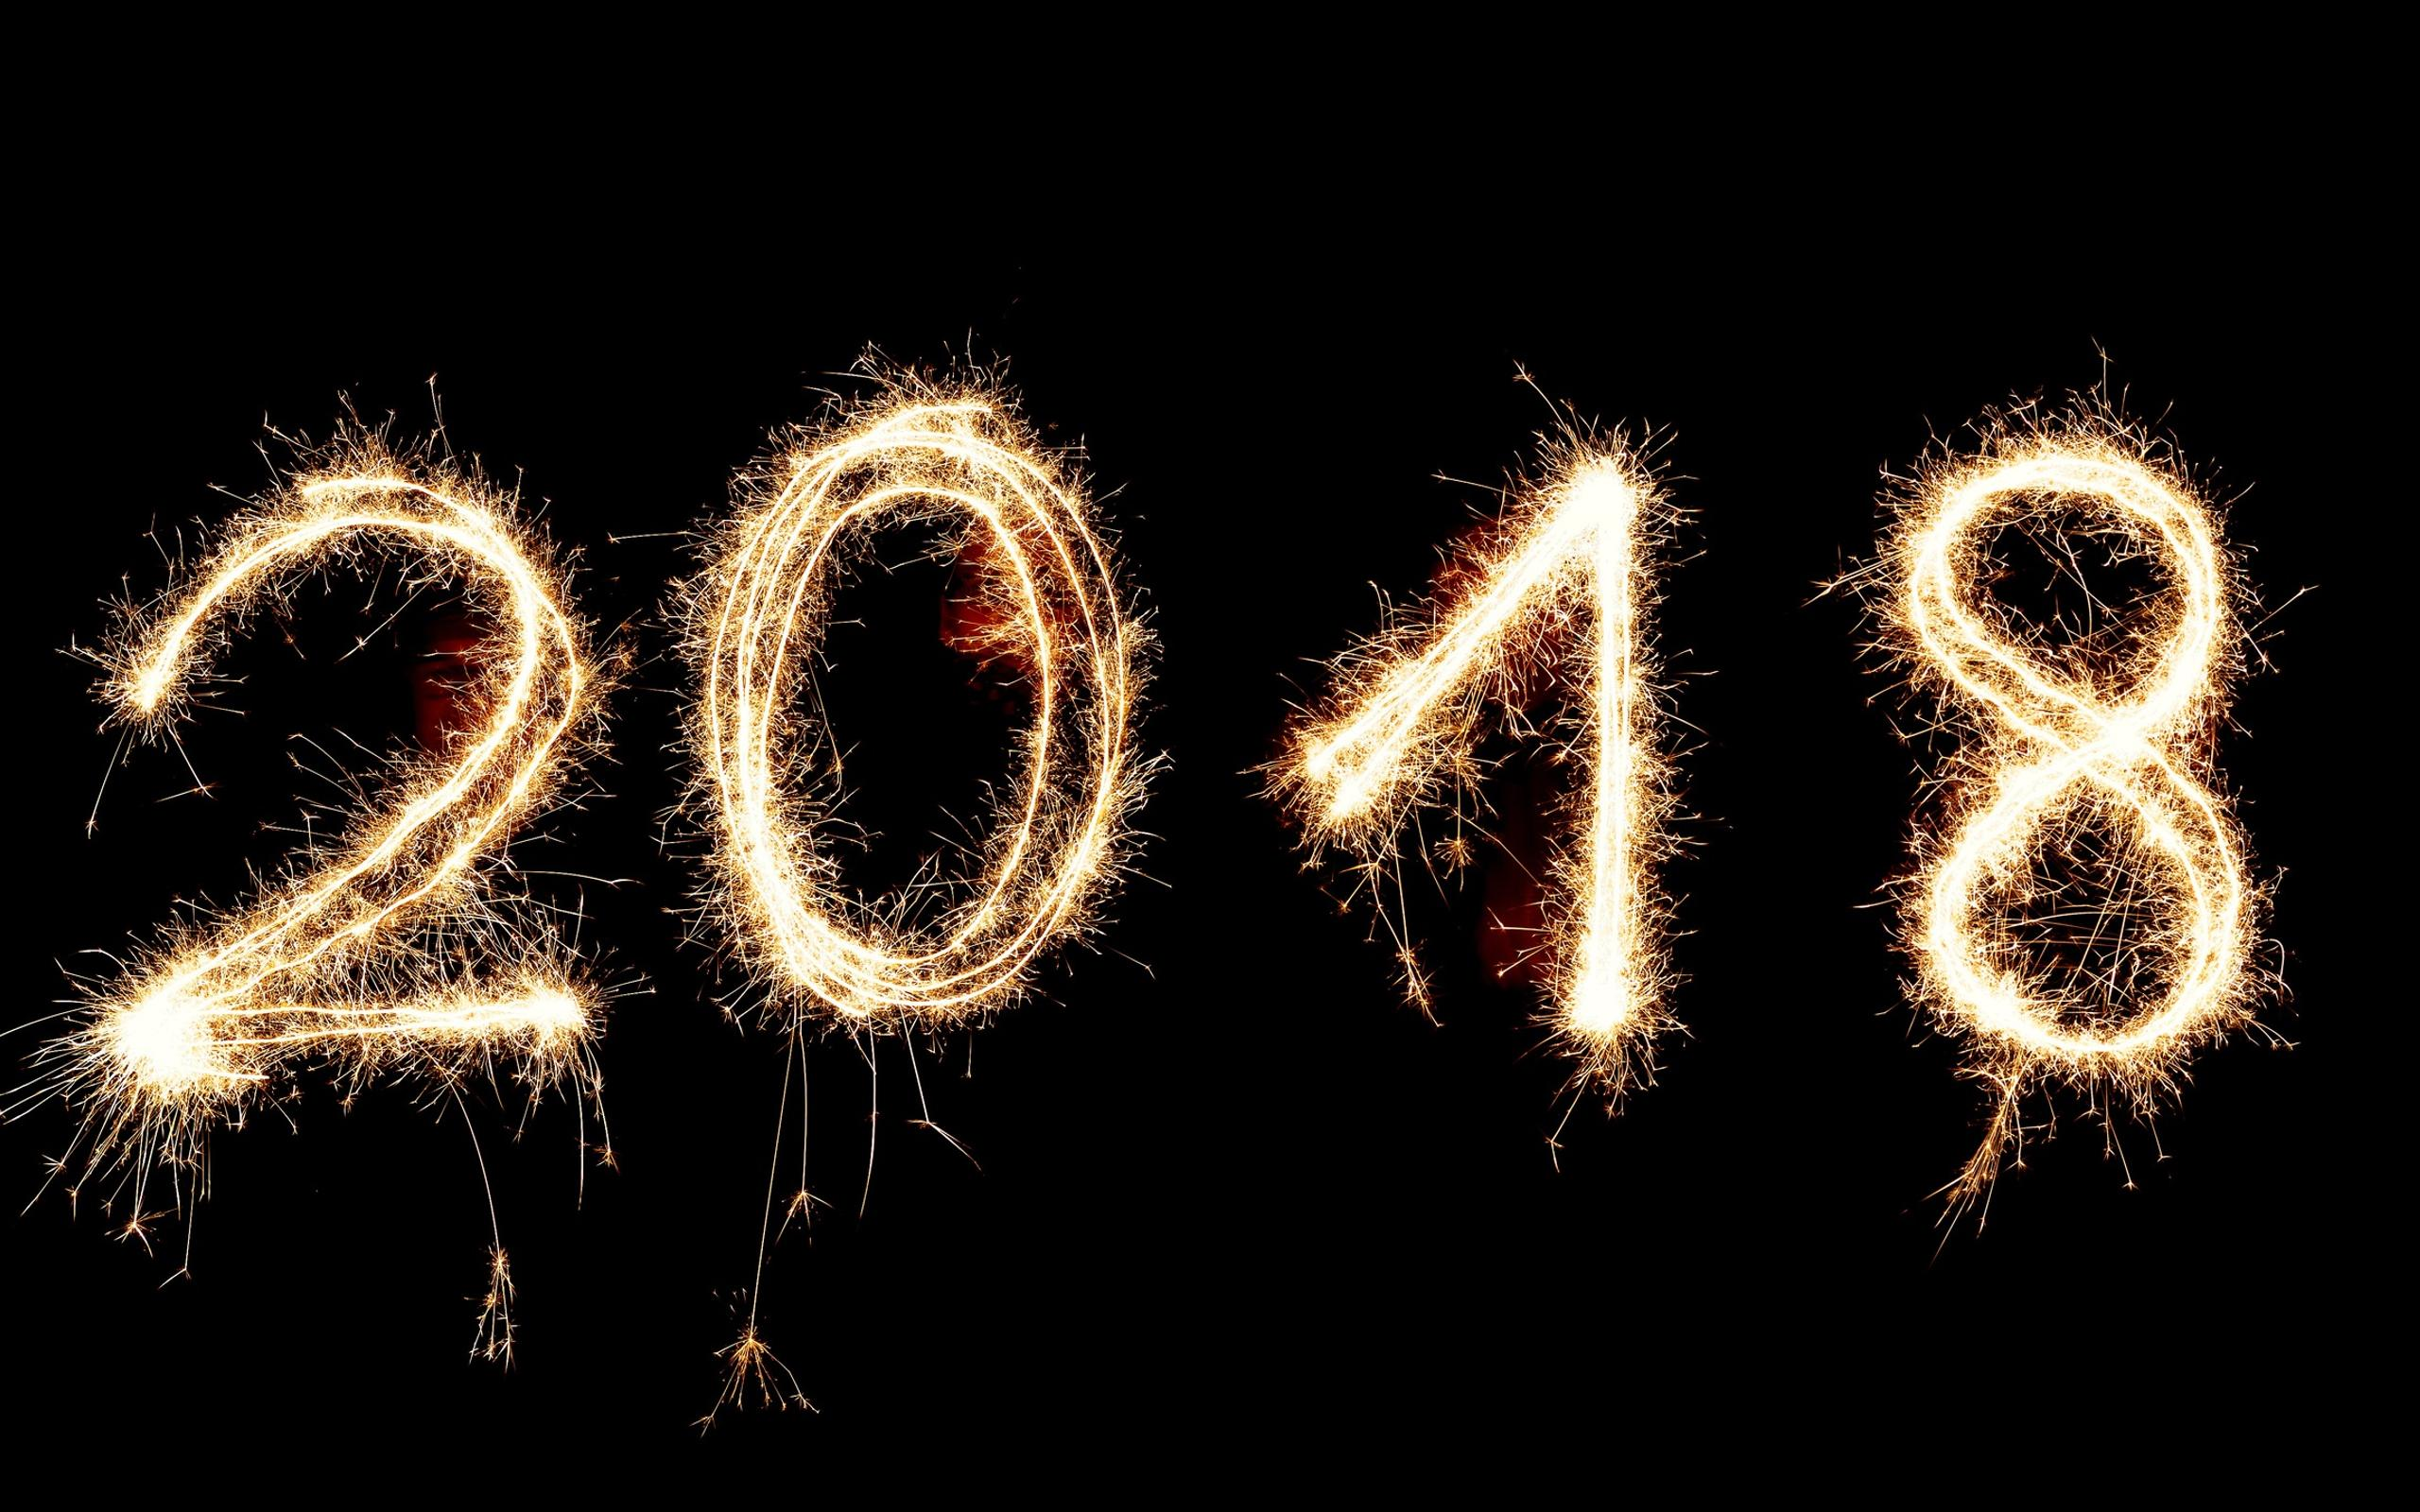 2018 made from fireworks happy new year wallpaper download 2560x1600